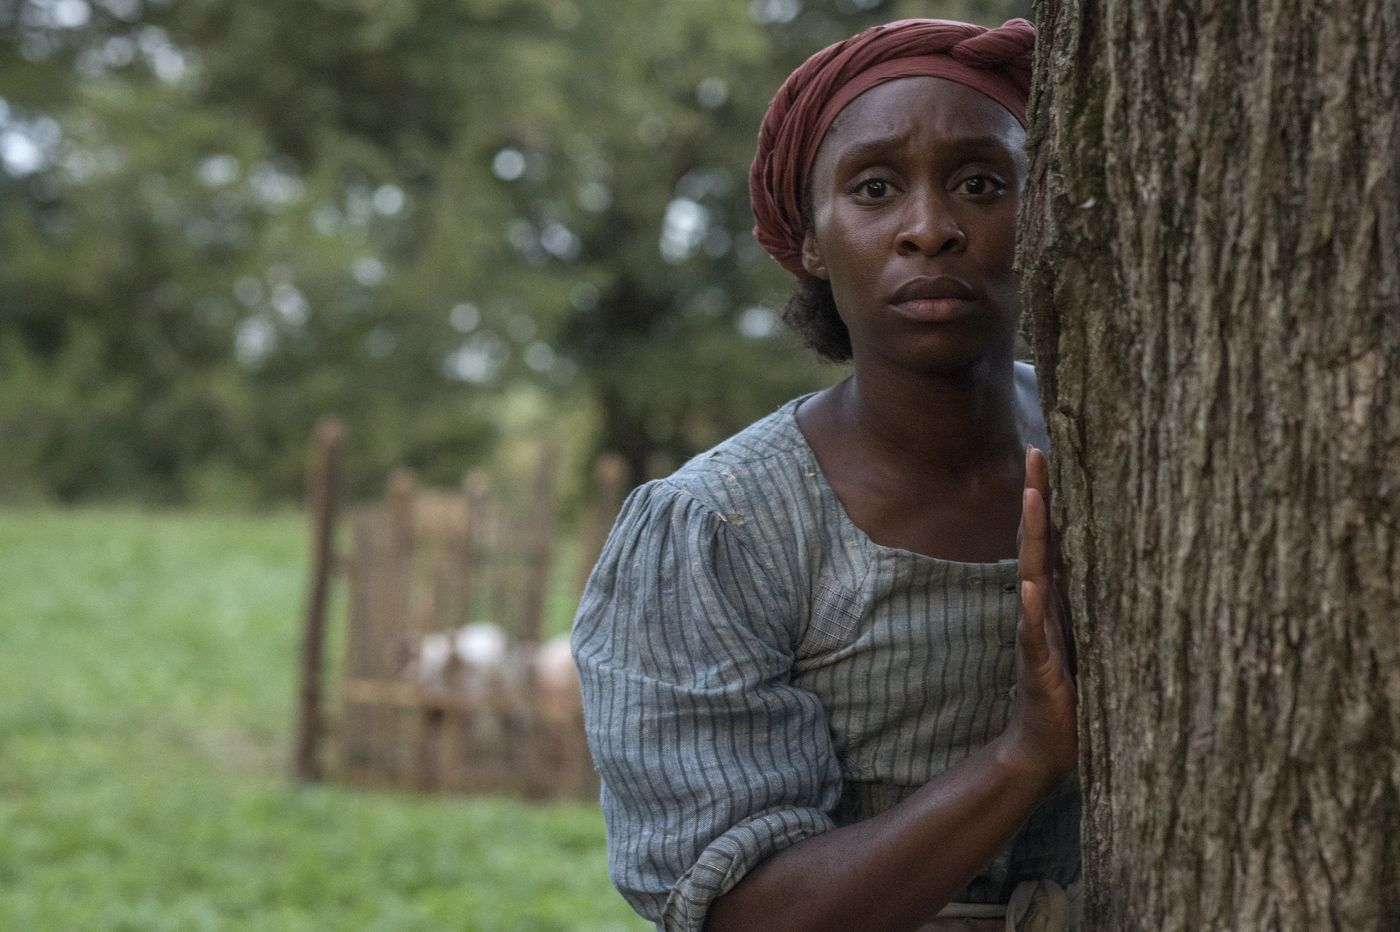 Regal Theaters offers free local screenings of 'Harriet' for Black History Month